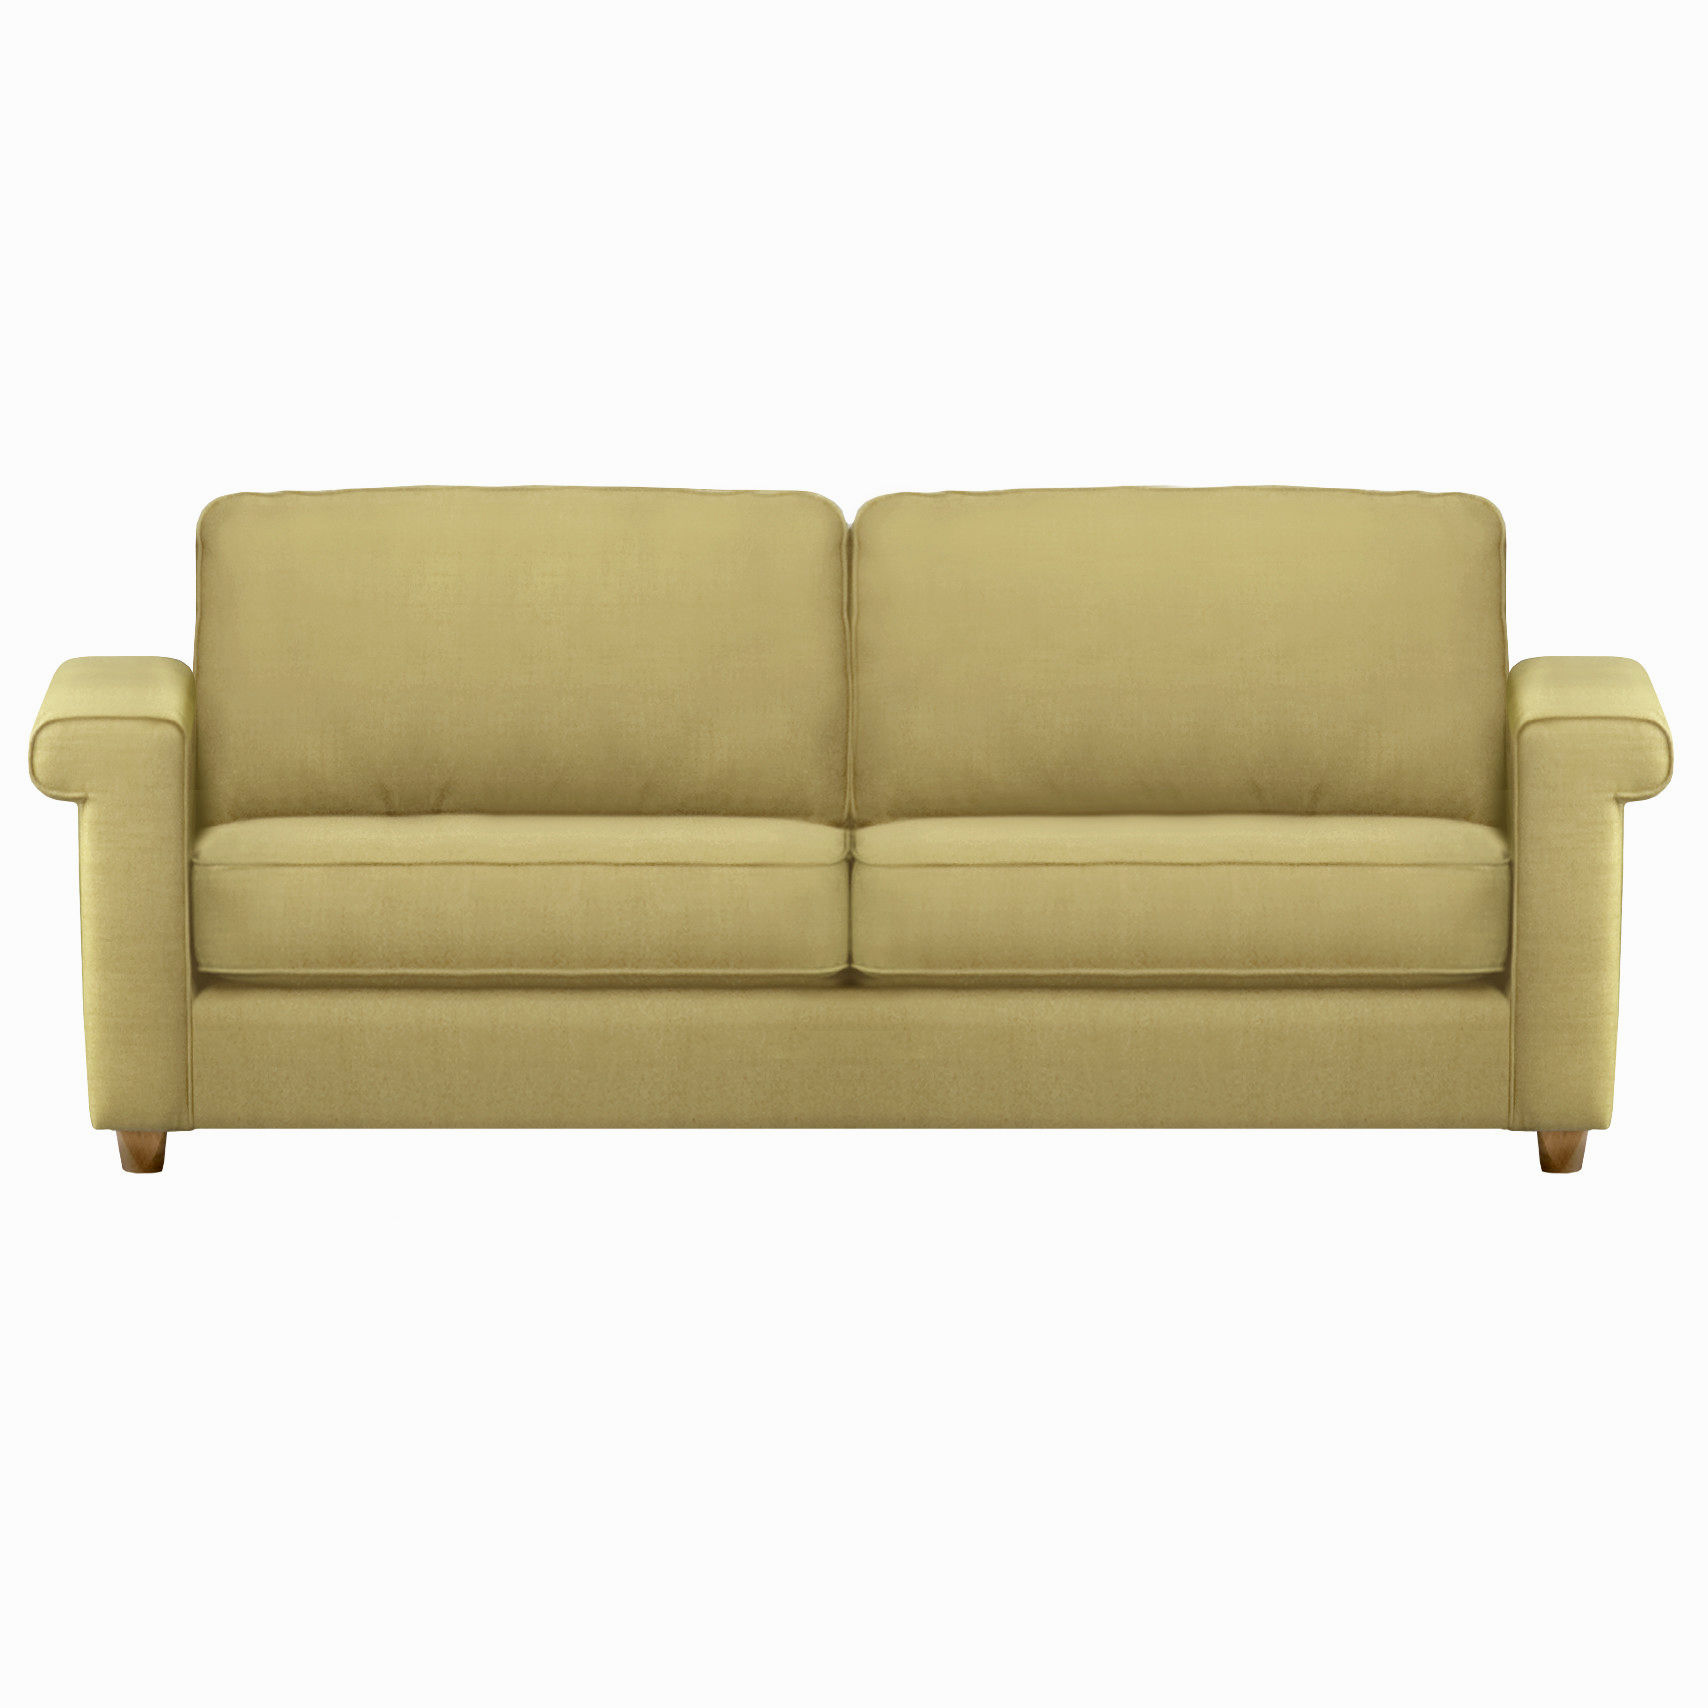 beautiful sofa crossword clue photo-Stylish sofa Crossword Clue Portrait